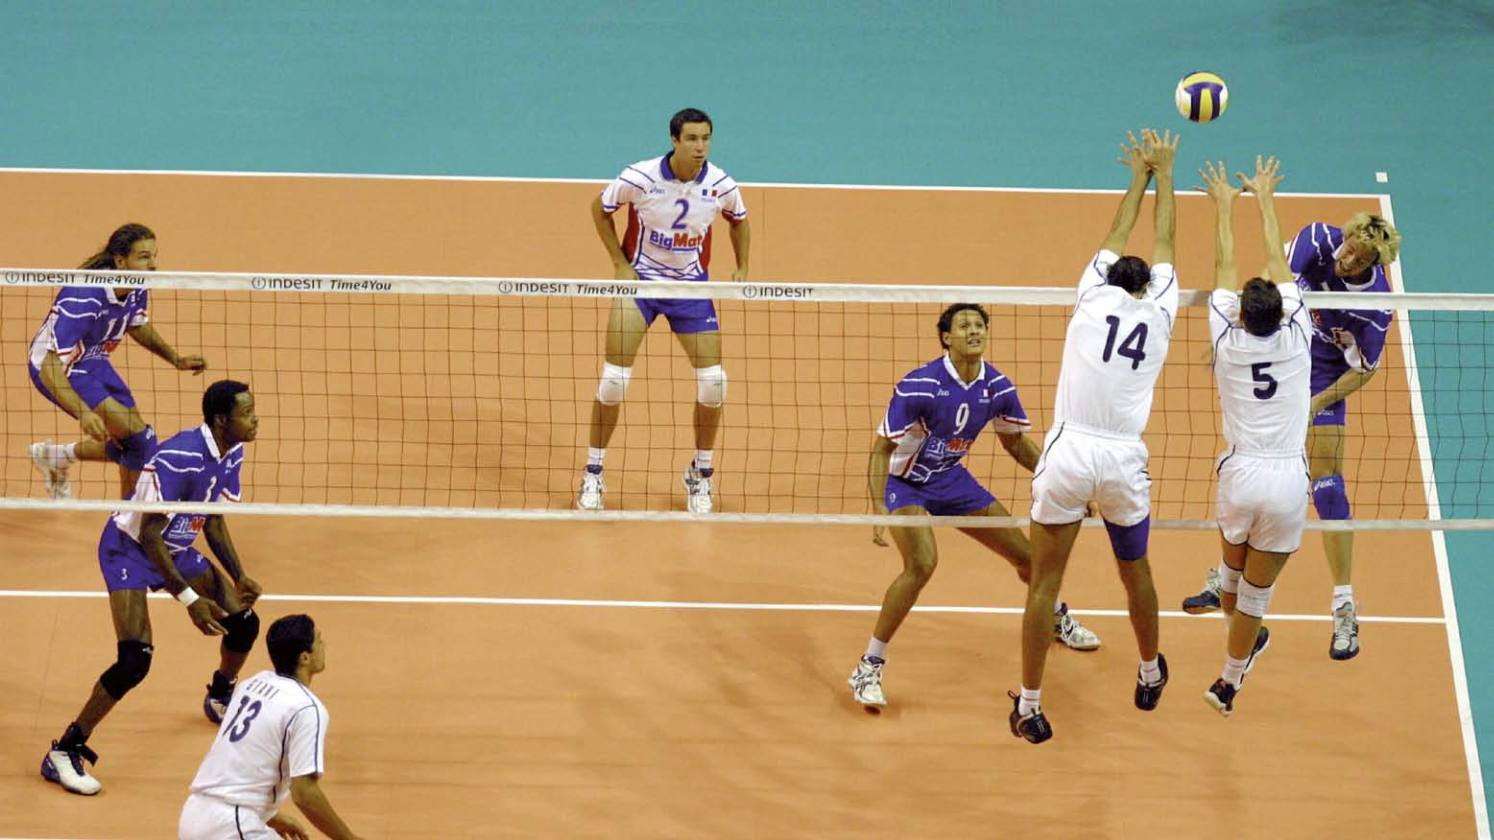 Volleyball Pc Game 2012 - filemotor